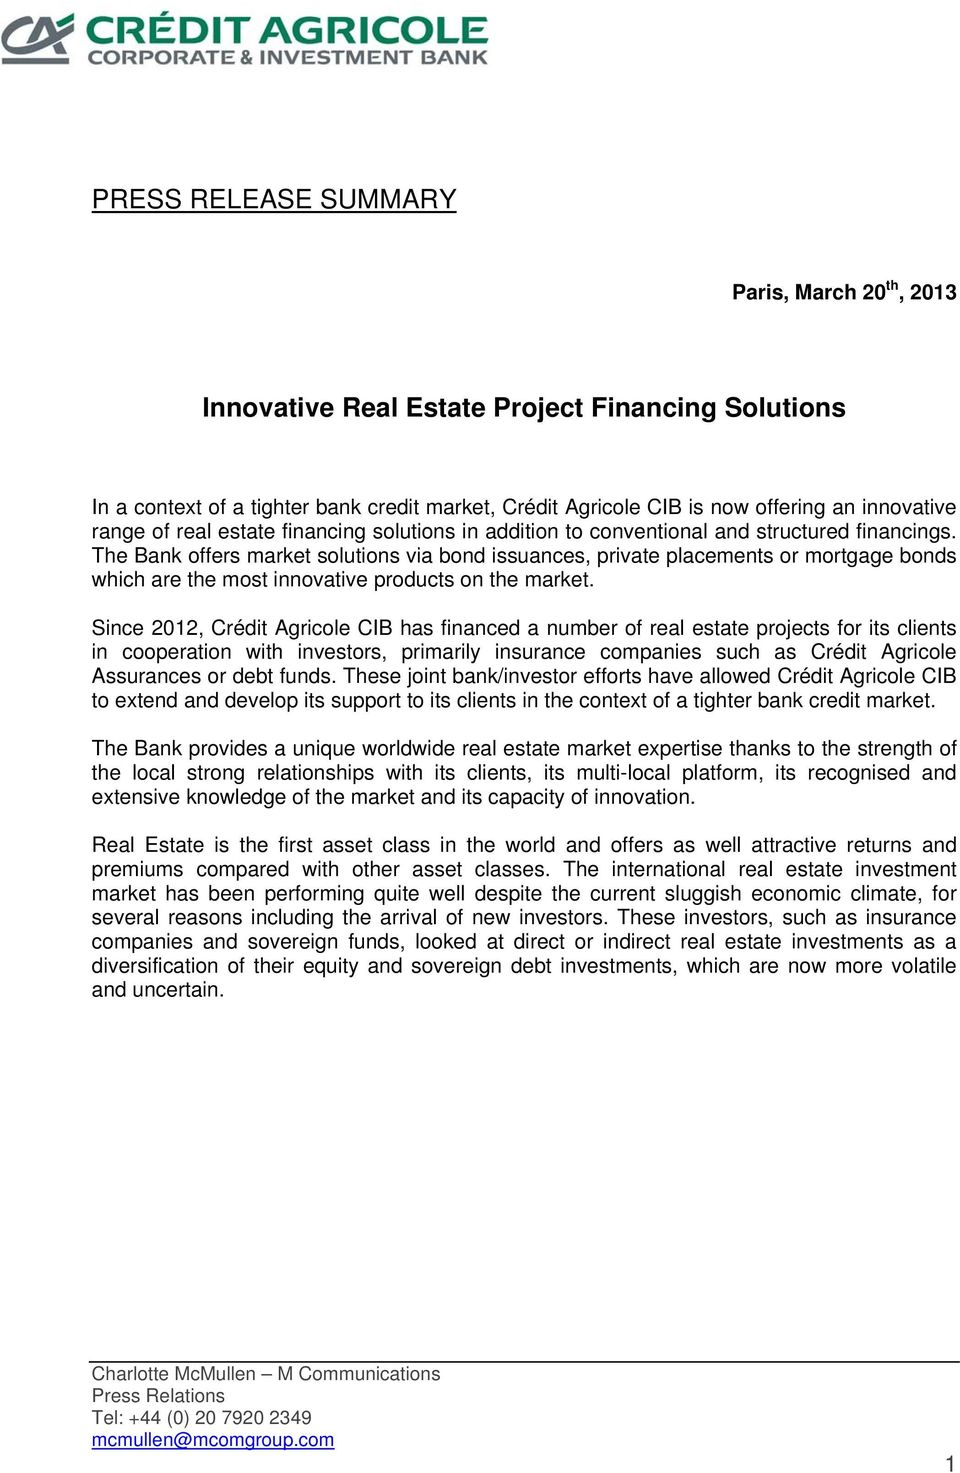 Innovative financing solutions for the Real Estate Industry 2